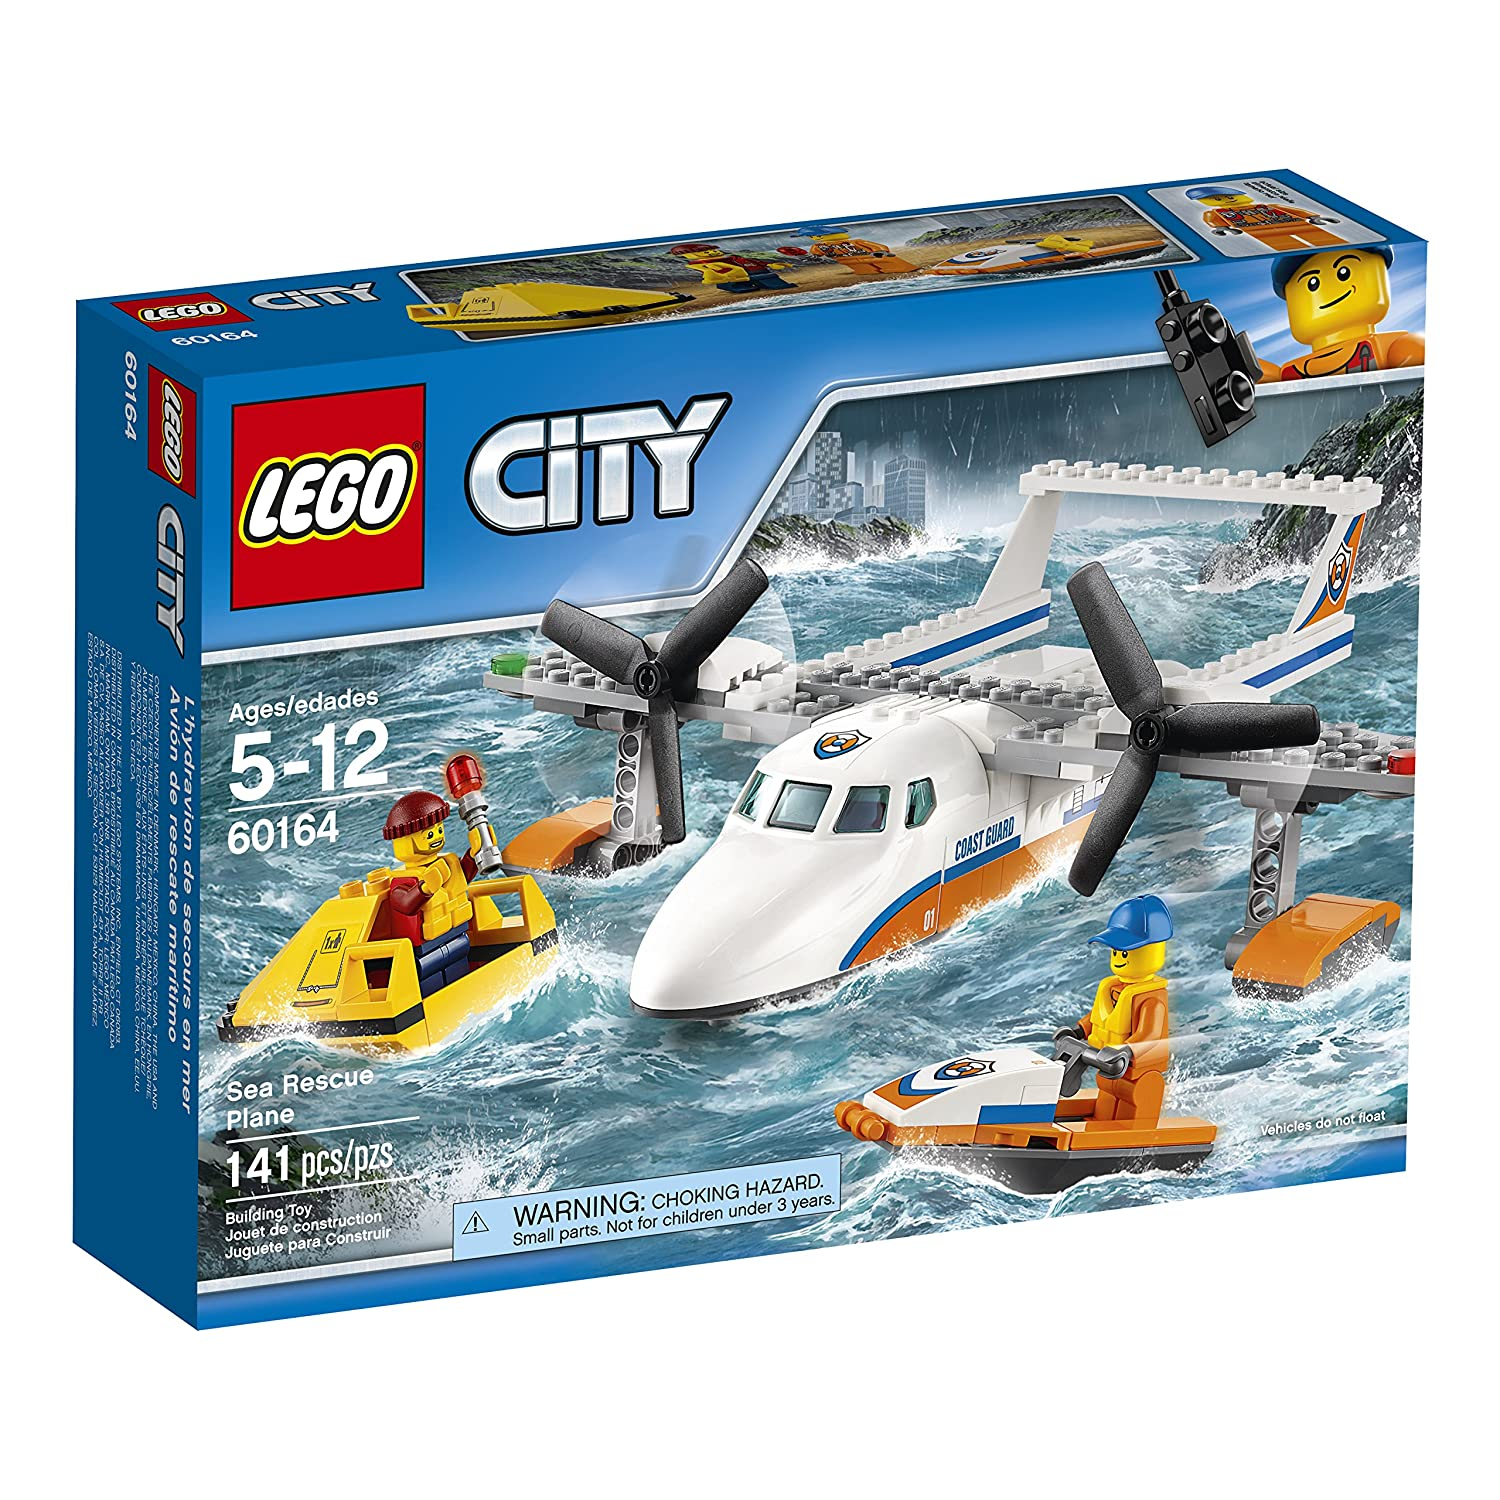 Lego City Coast Guard Sea Rescue Plane Building Kit 141 Piece